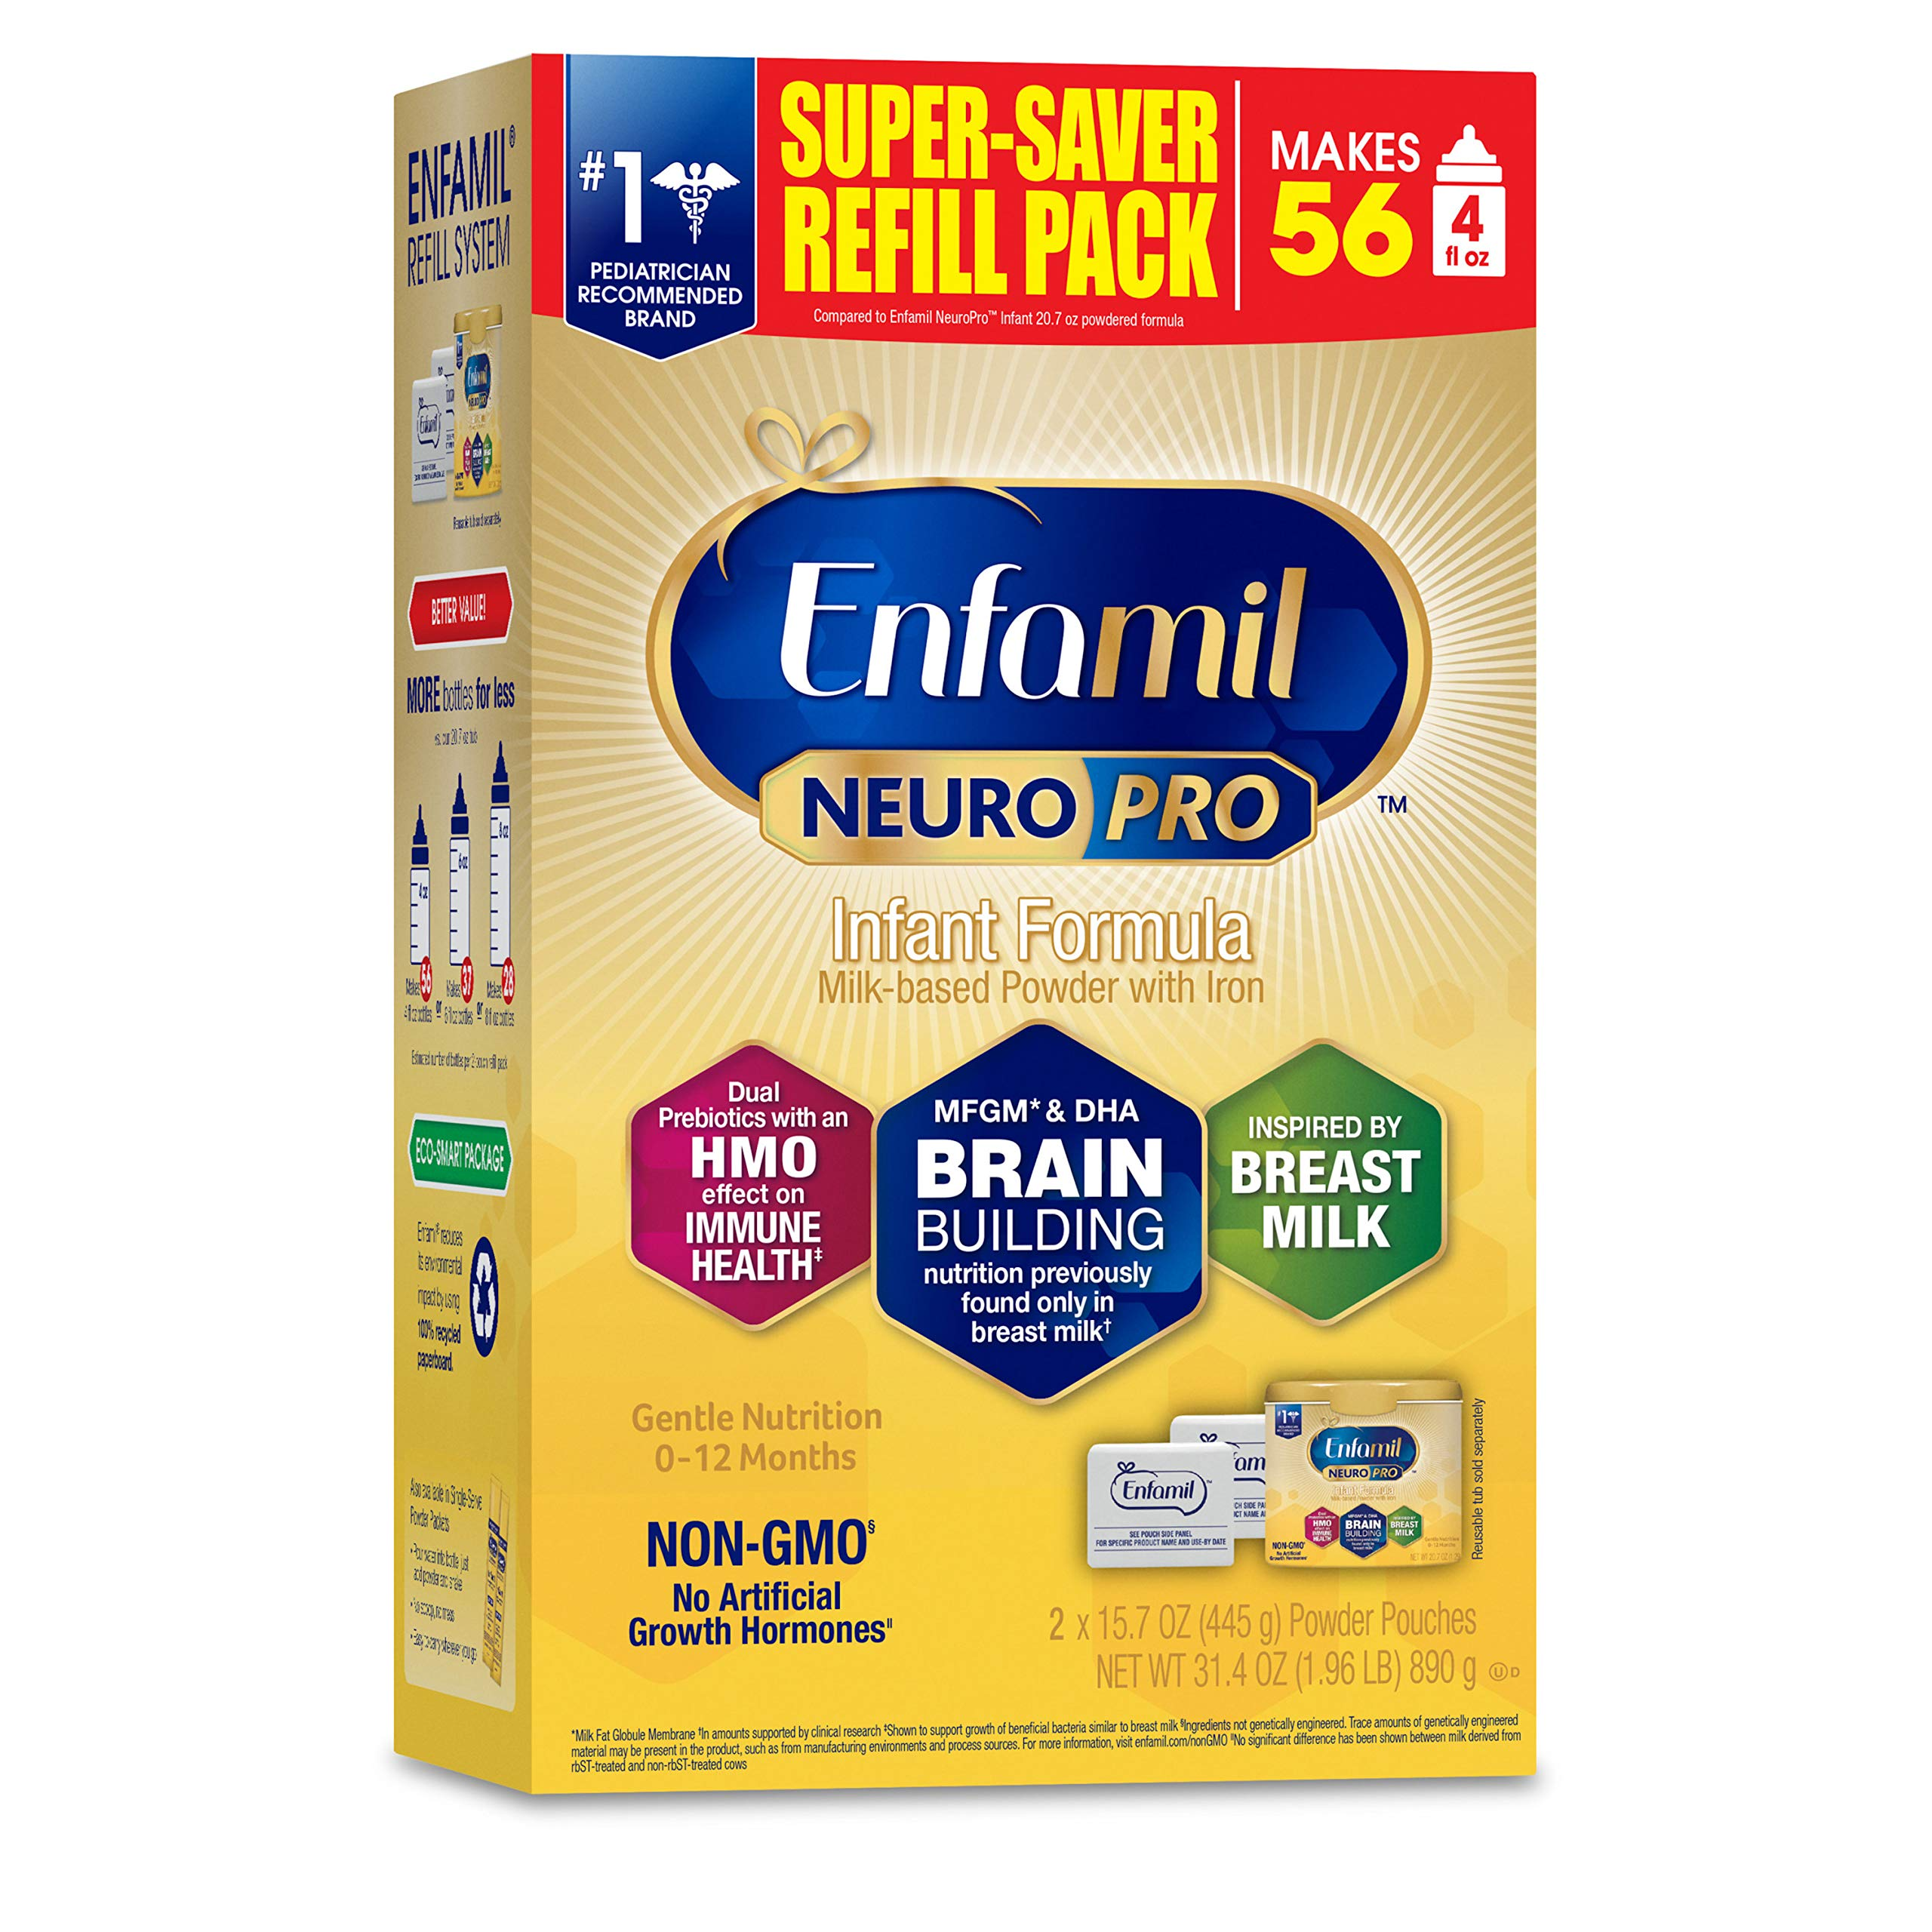 Enfamil NeuroPro Baby Formula, Brain and Immune Support with DHA, Iron and Prebiotics, Infant formula inspired by Breast Milk, Non-GMO, Refill box, 31.4 Oz